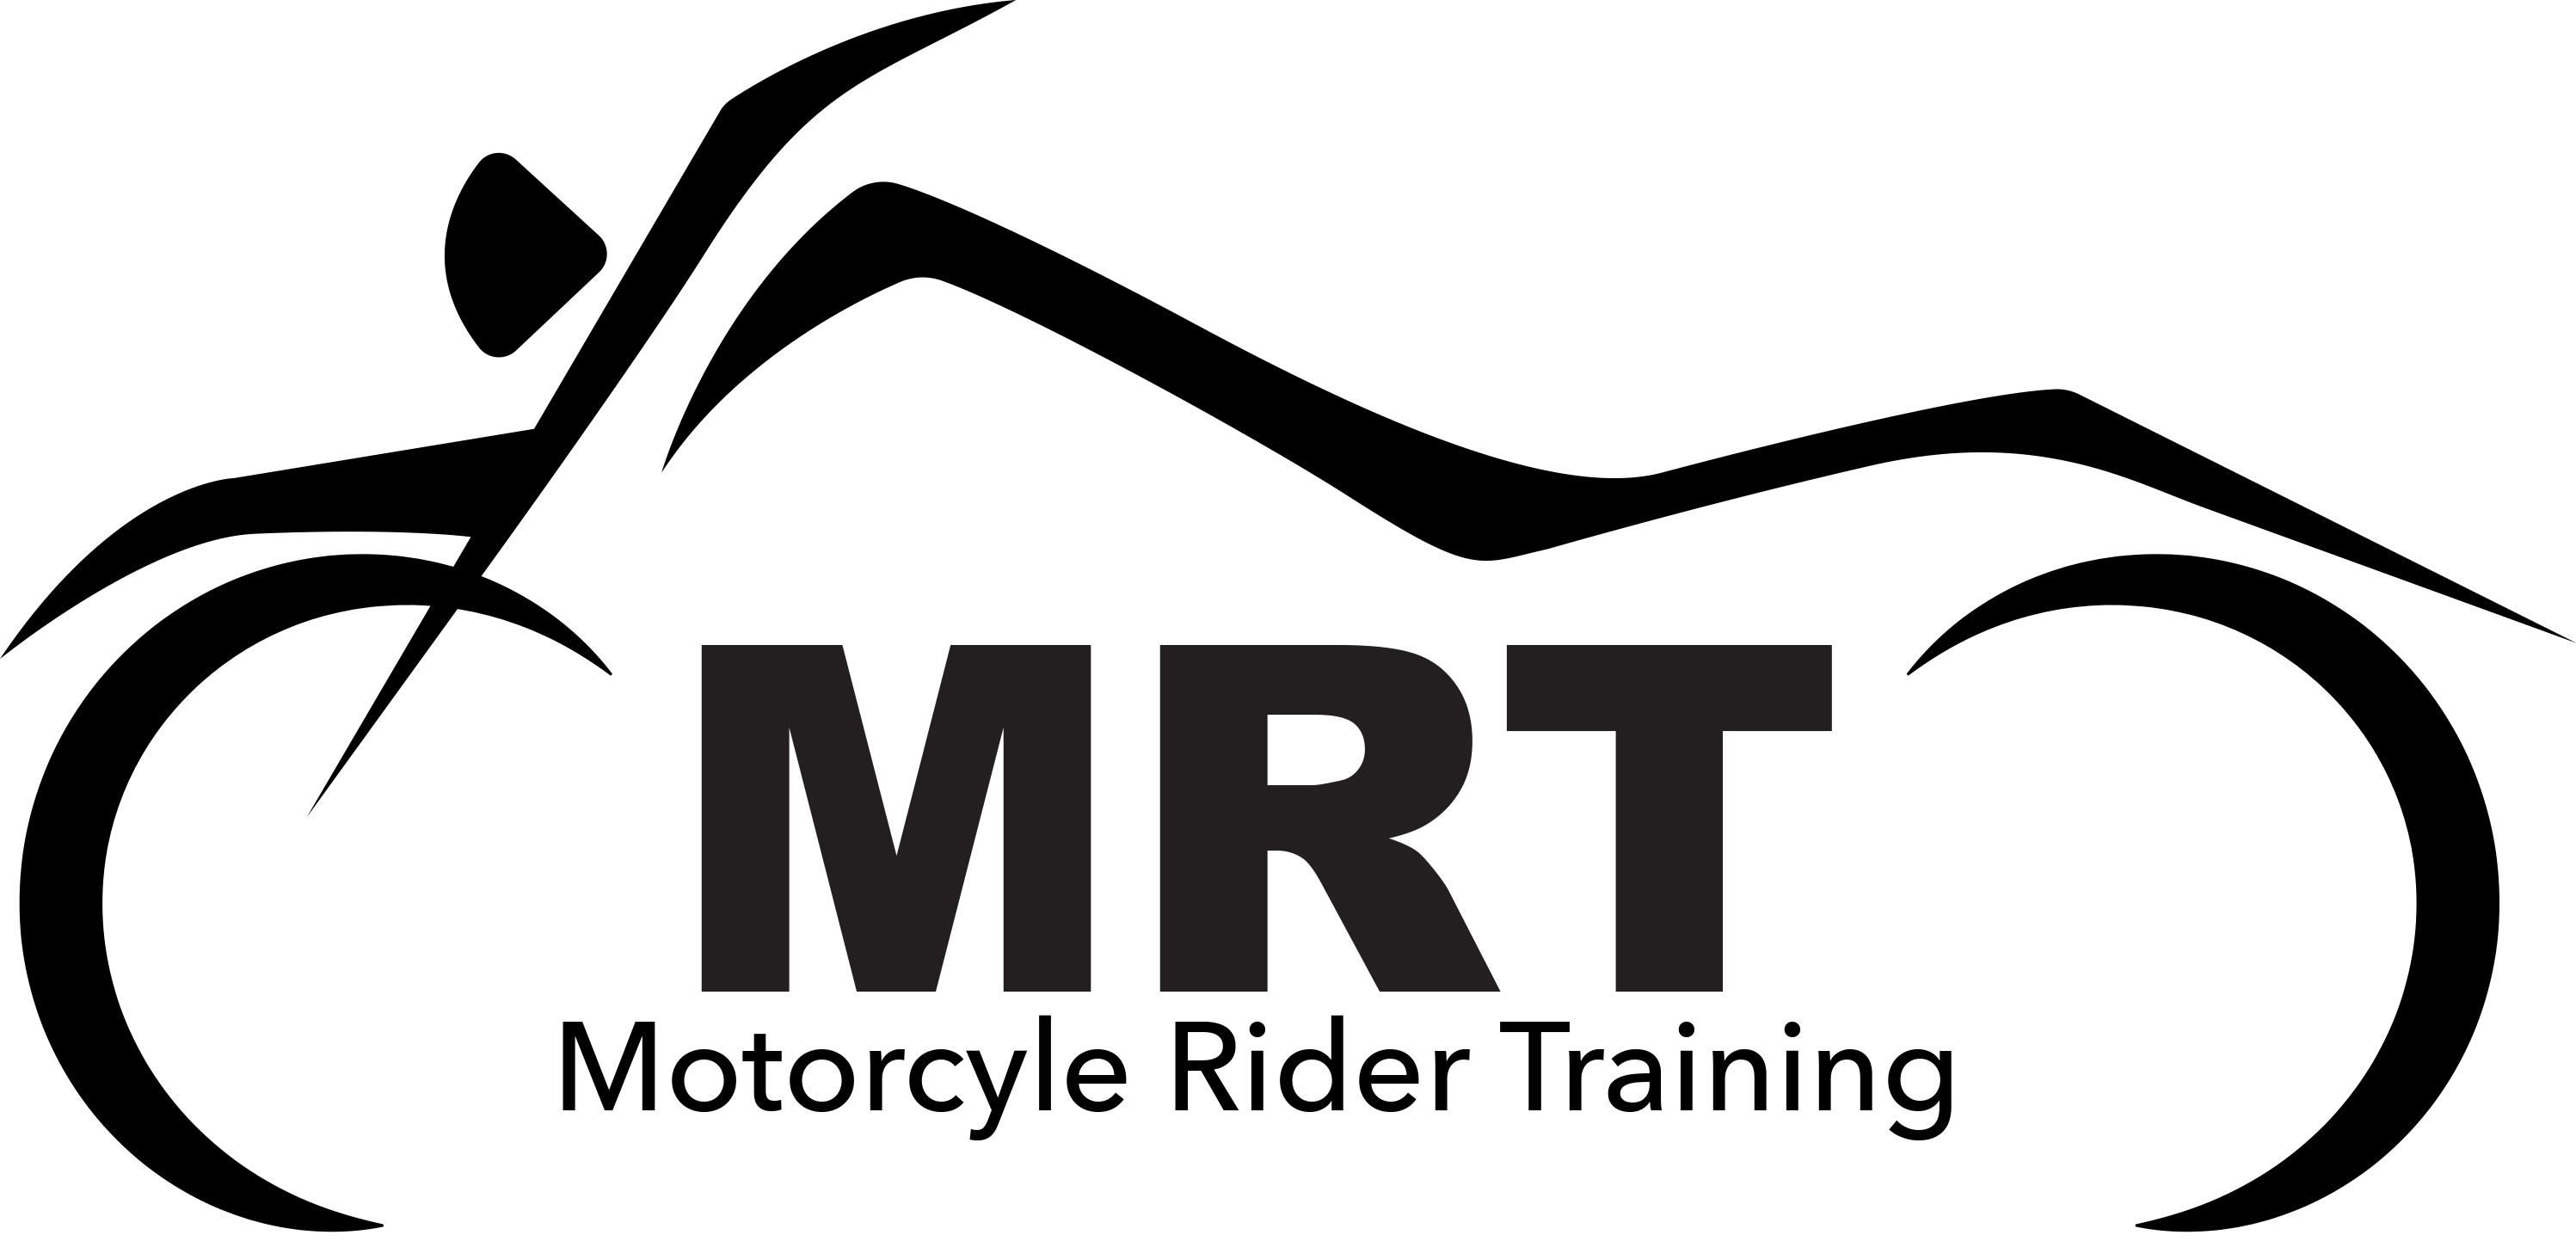 Home - Motorcycle Rider Training of Indiana